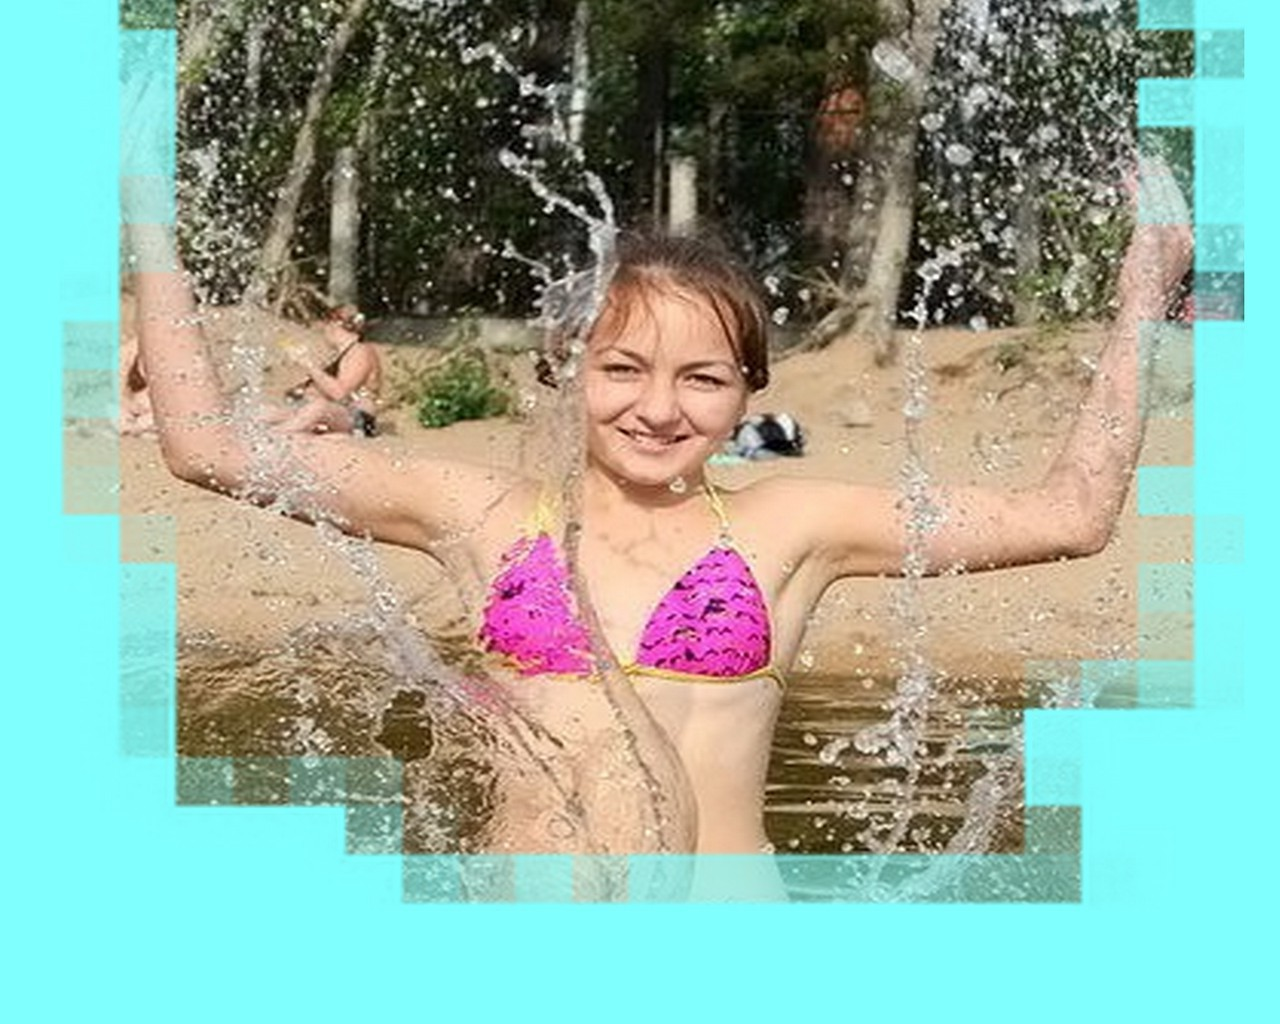 on vacation summer water wet relaxation fun leisure swimming pool nature happiness beautiful girl child woman outdoors young enjoyment joy lifestyle cheerful